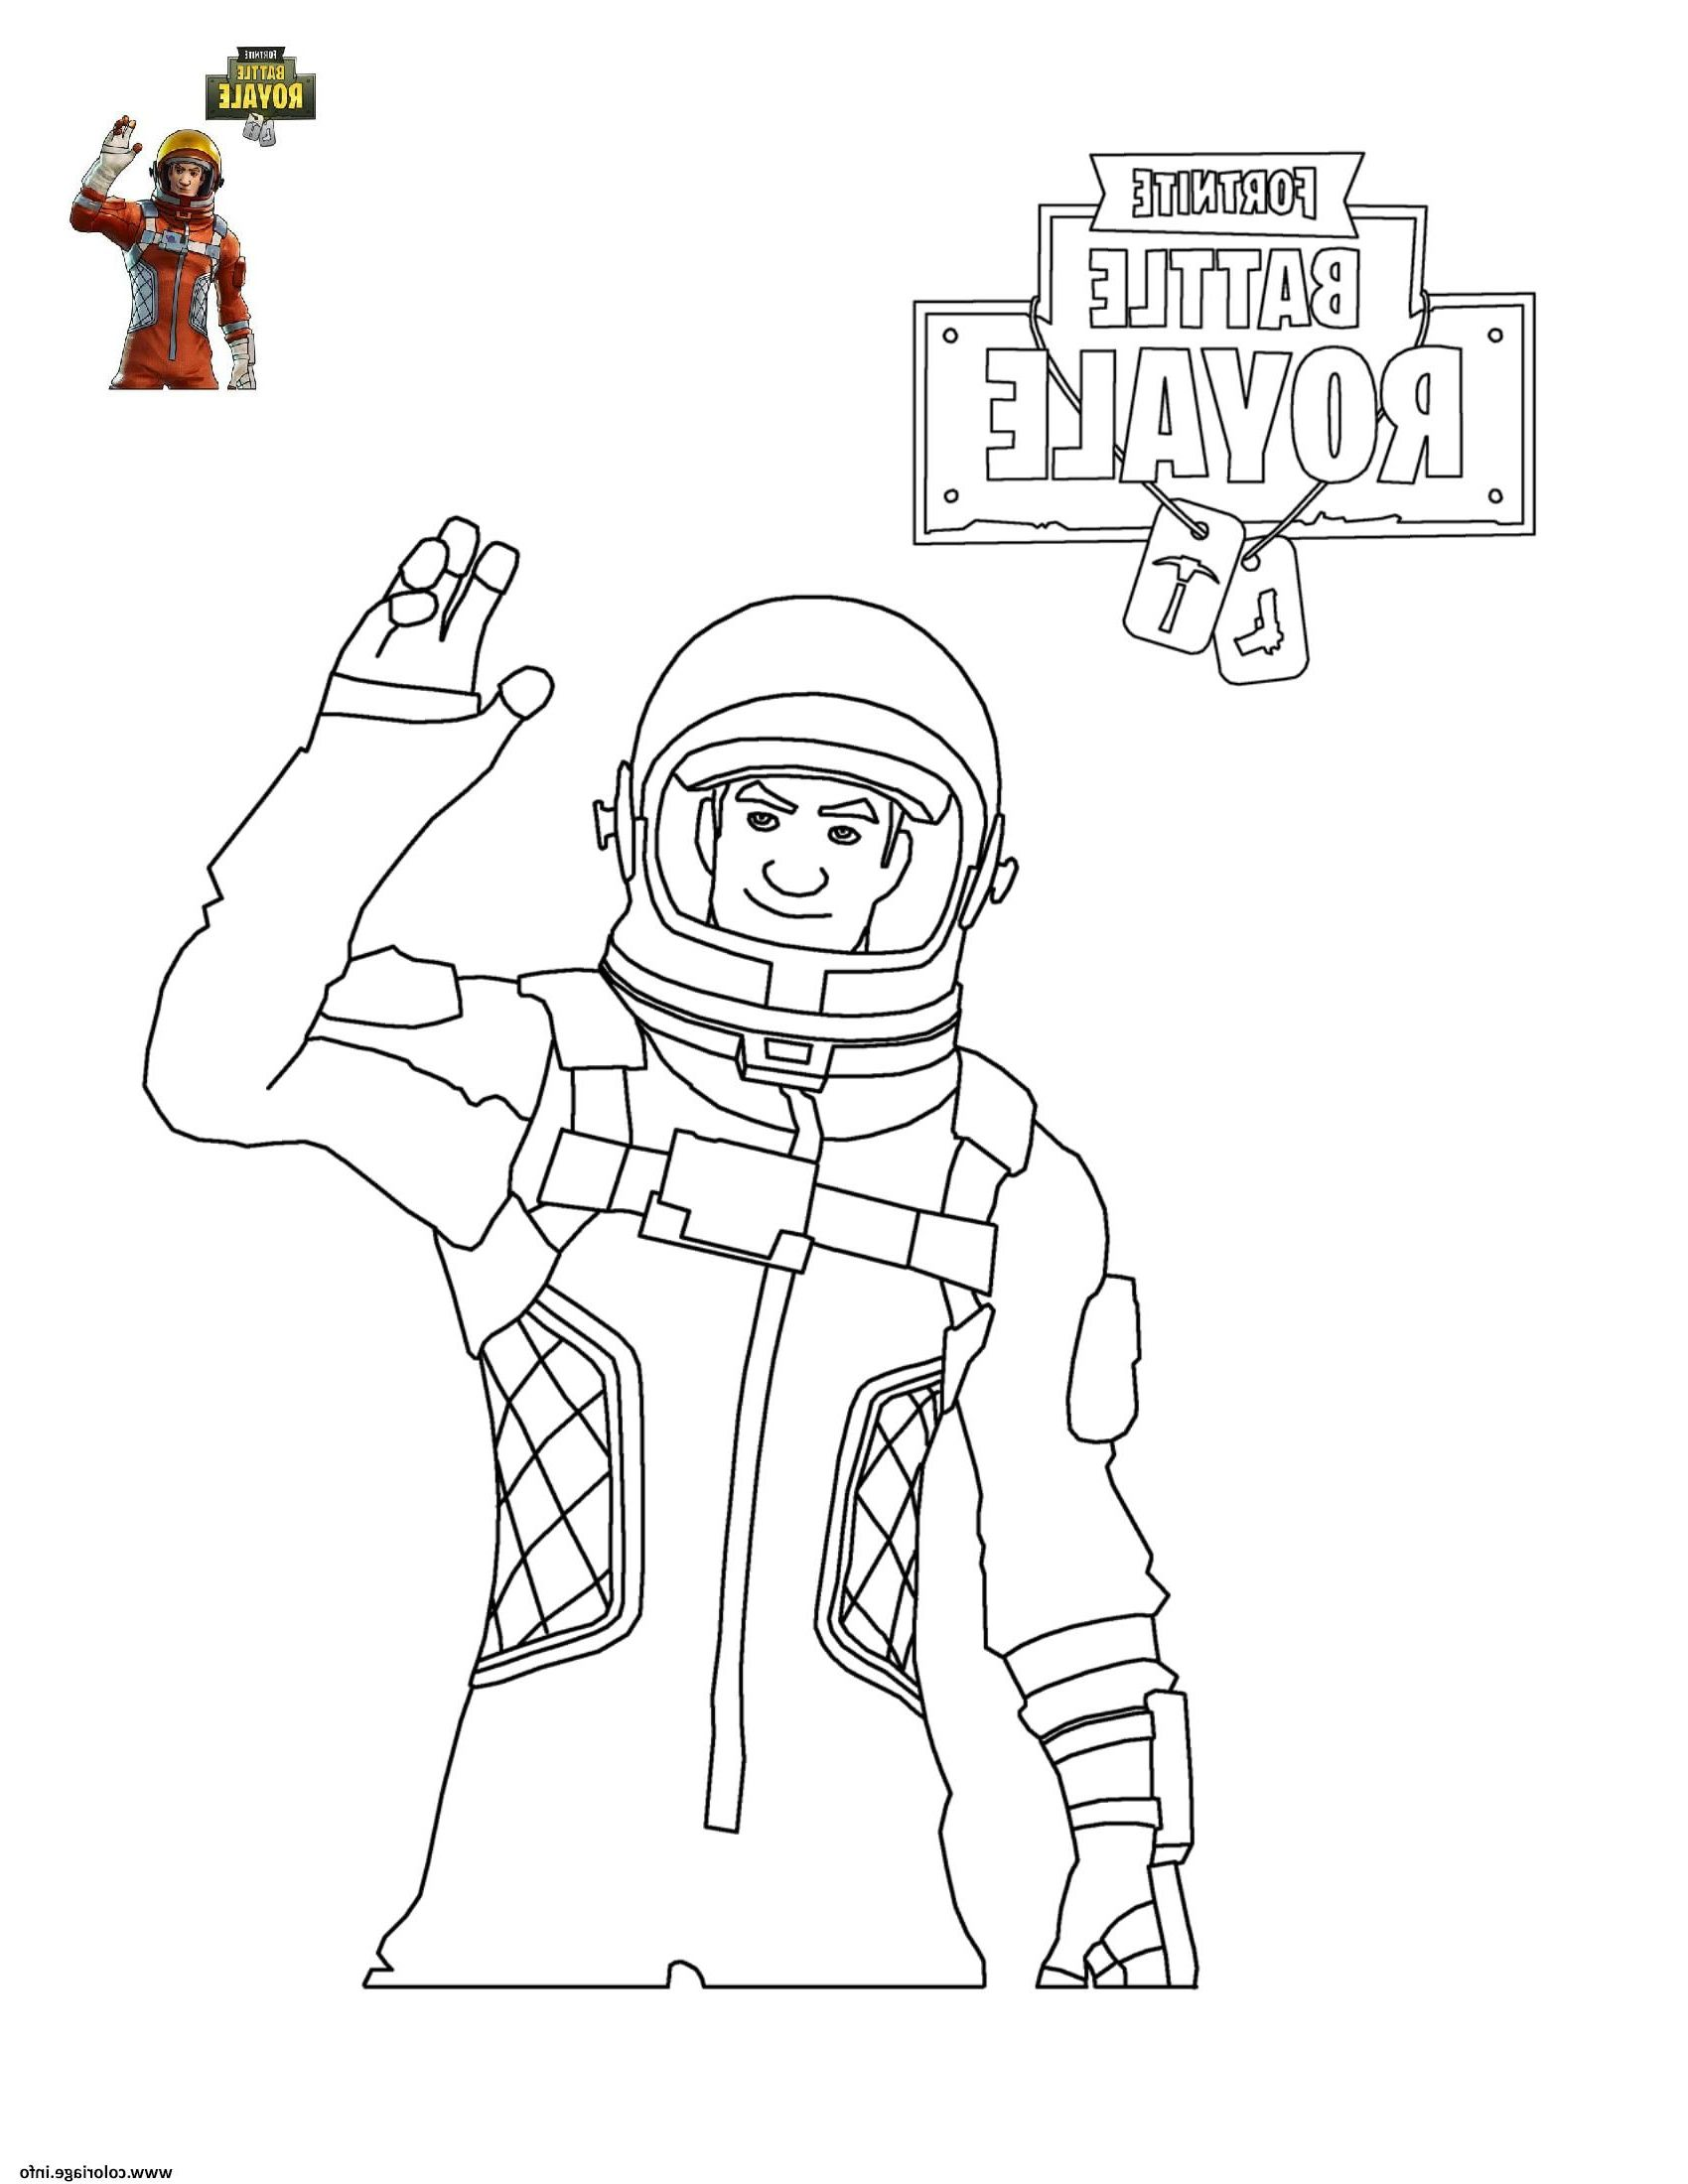 Coloriage Skin Fortnite 11 Loisirs Coloriage Skin Fortnite Image